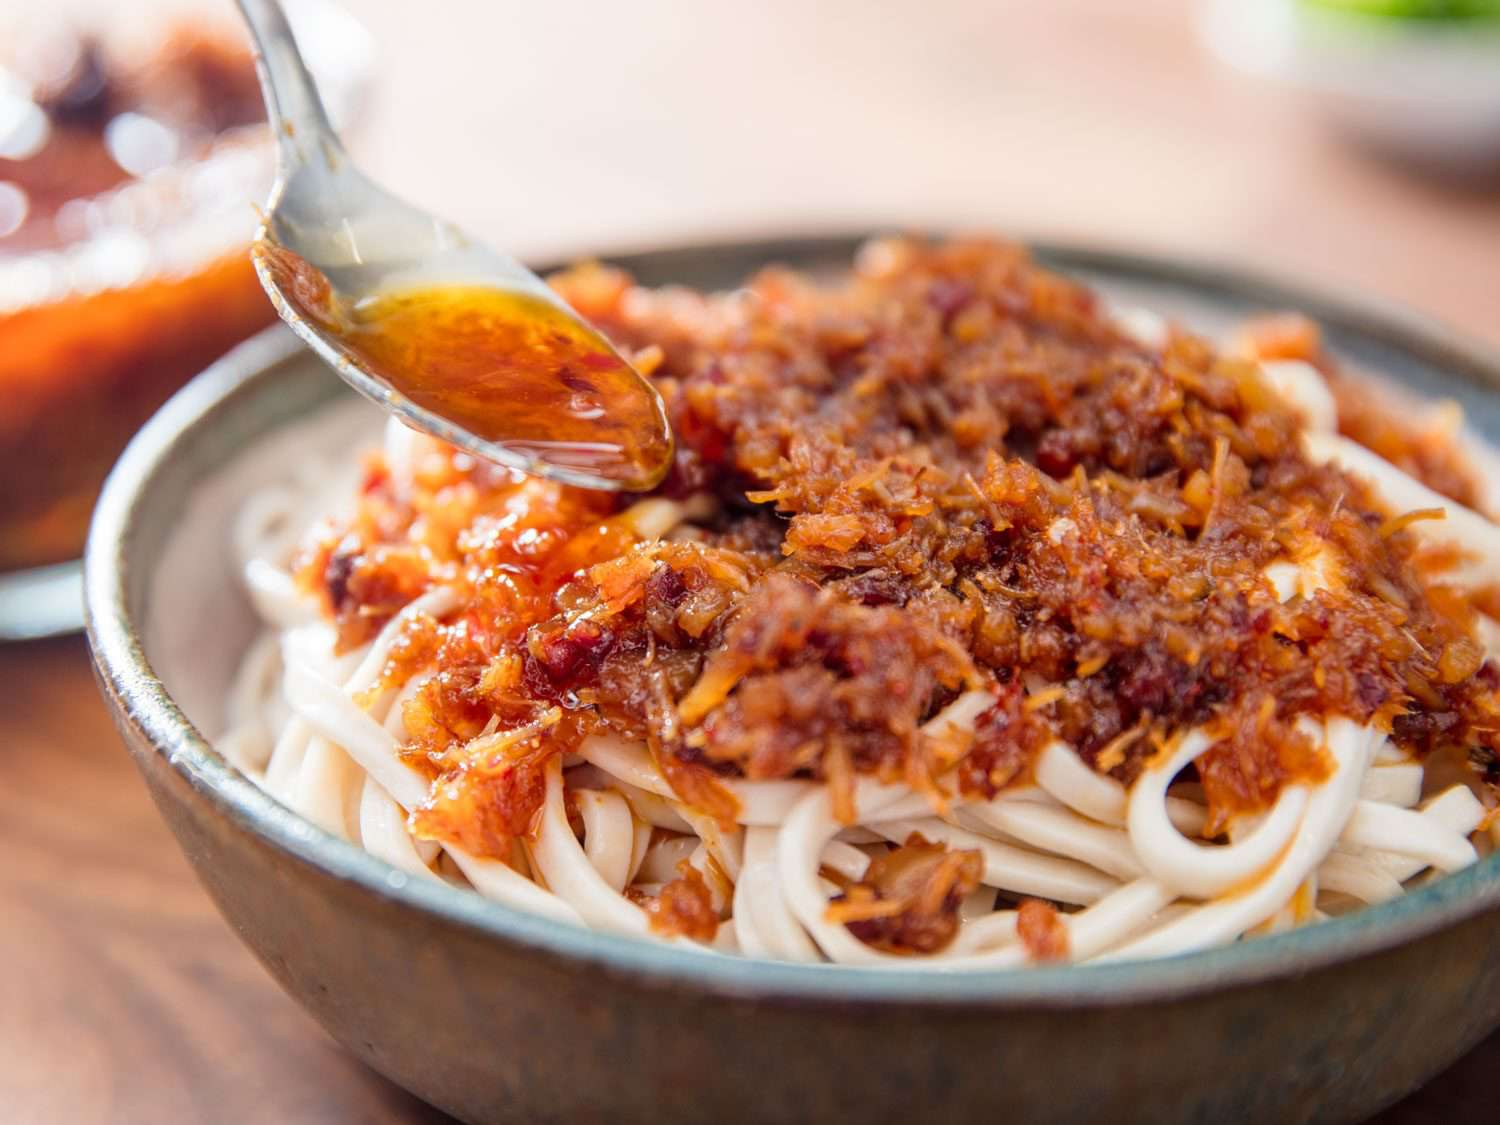 Spooning XO sauce over a bowl of noodles.